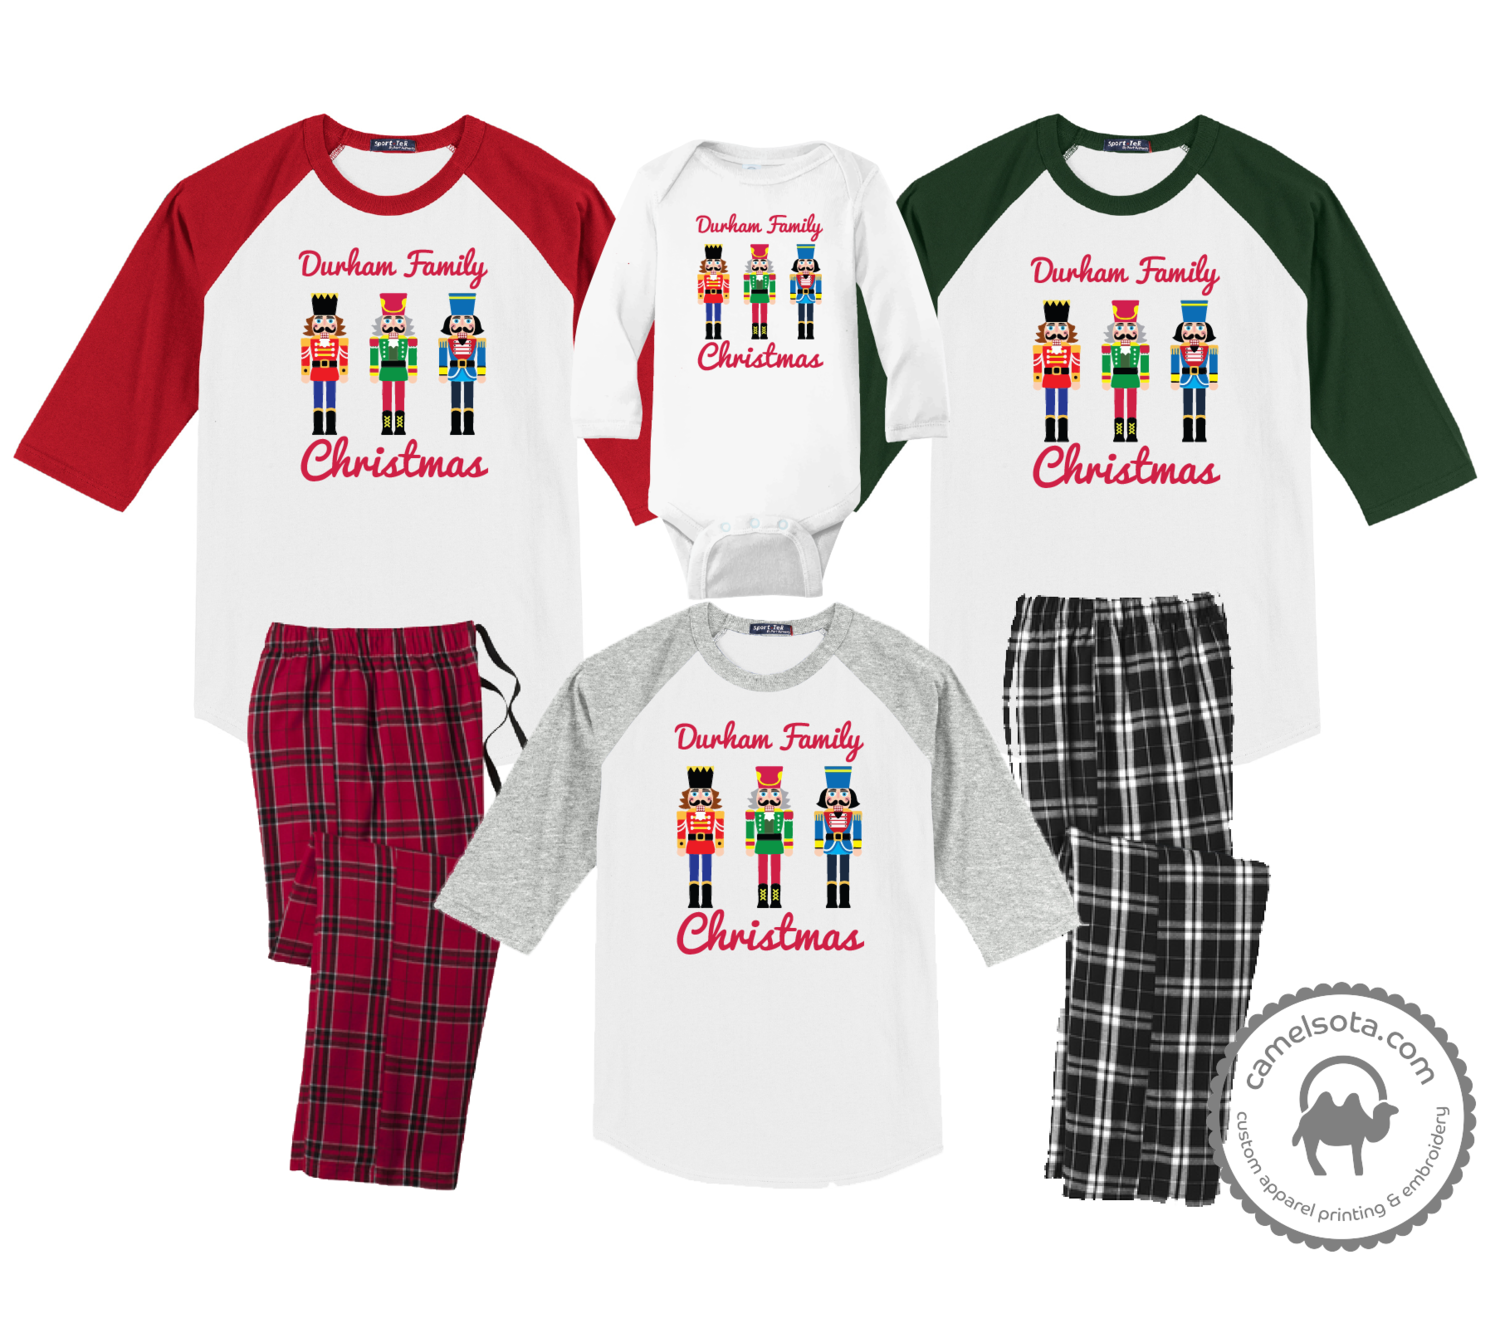 Family Coordinating Christmas Shirts and Pajama Pants - Nutcrackers